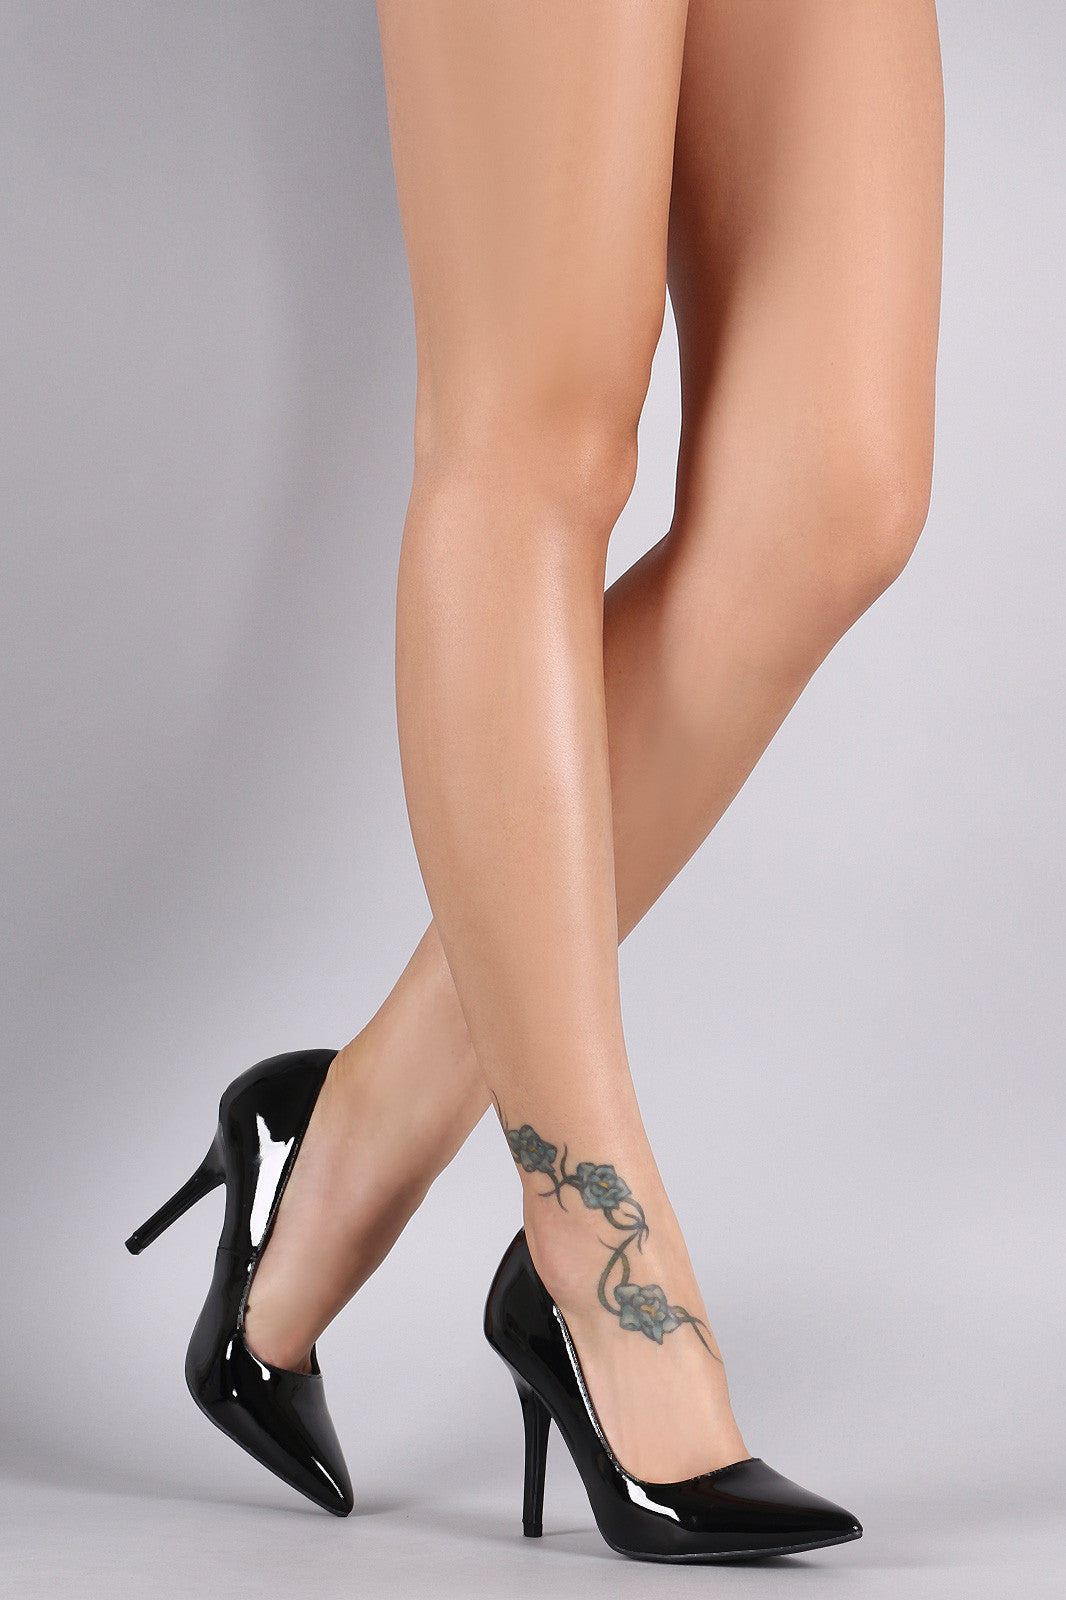 Wild Diva Lounge Patent Pointy Toe Stiletto Pump - Thick 'N' Curvy Shop - 3